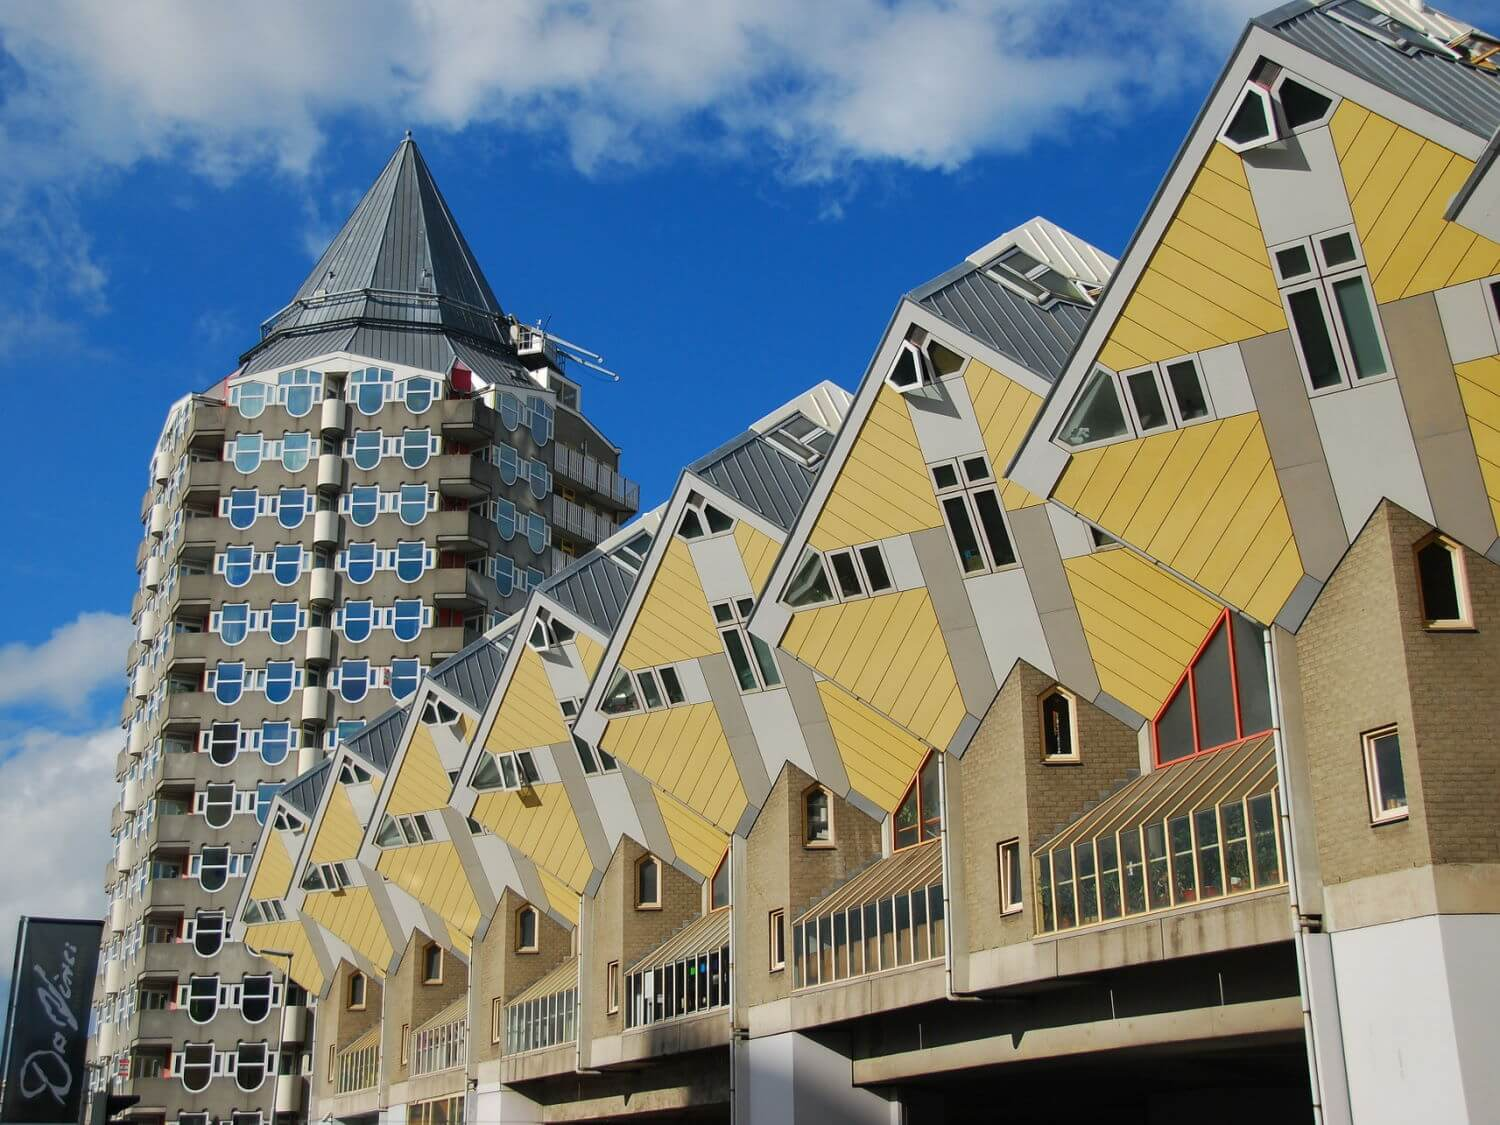 dusseldorf day trip to rotterdam cube houses